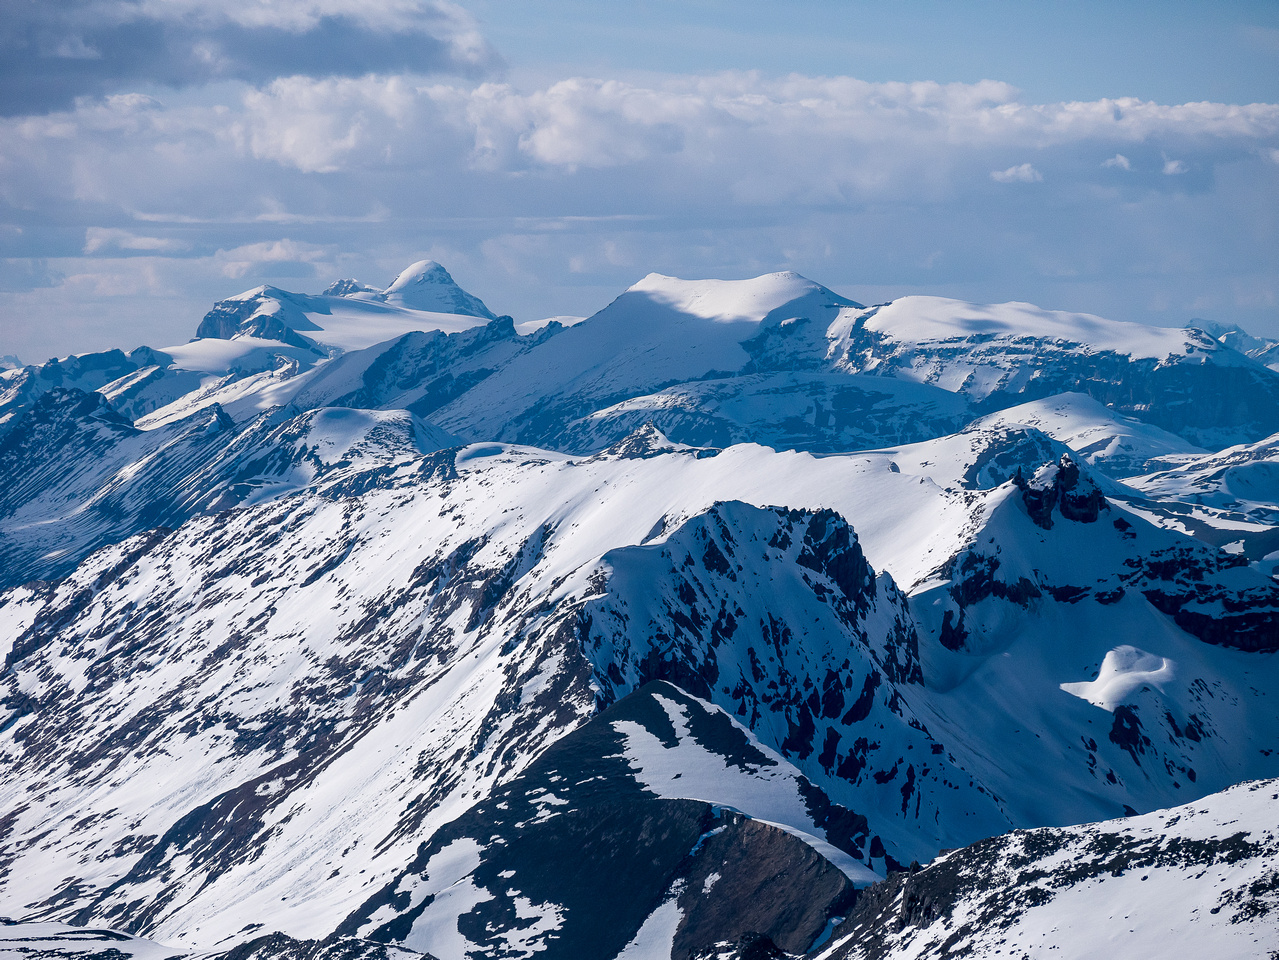 Mounts Warren and Brazeau (L) are 11,000ers that I climbed with Ben in 2015.